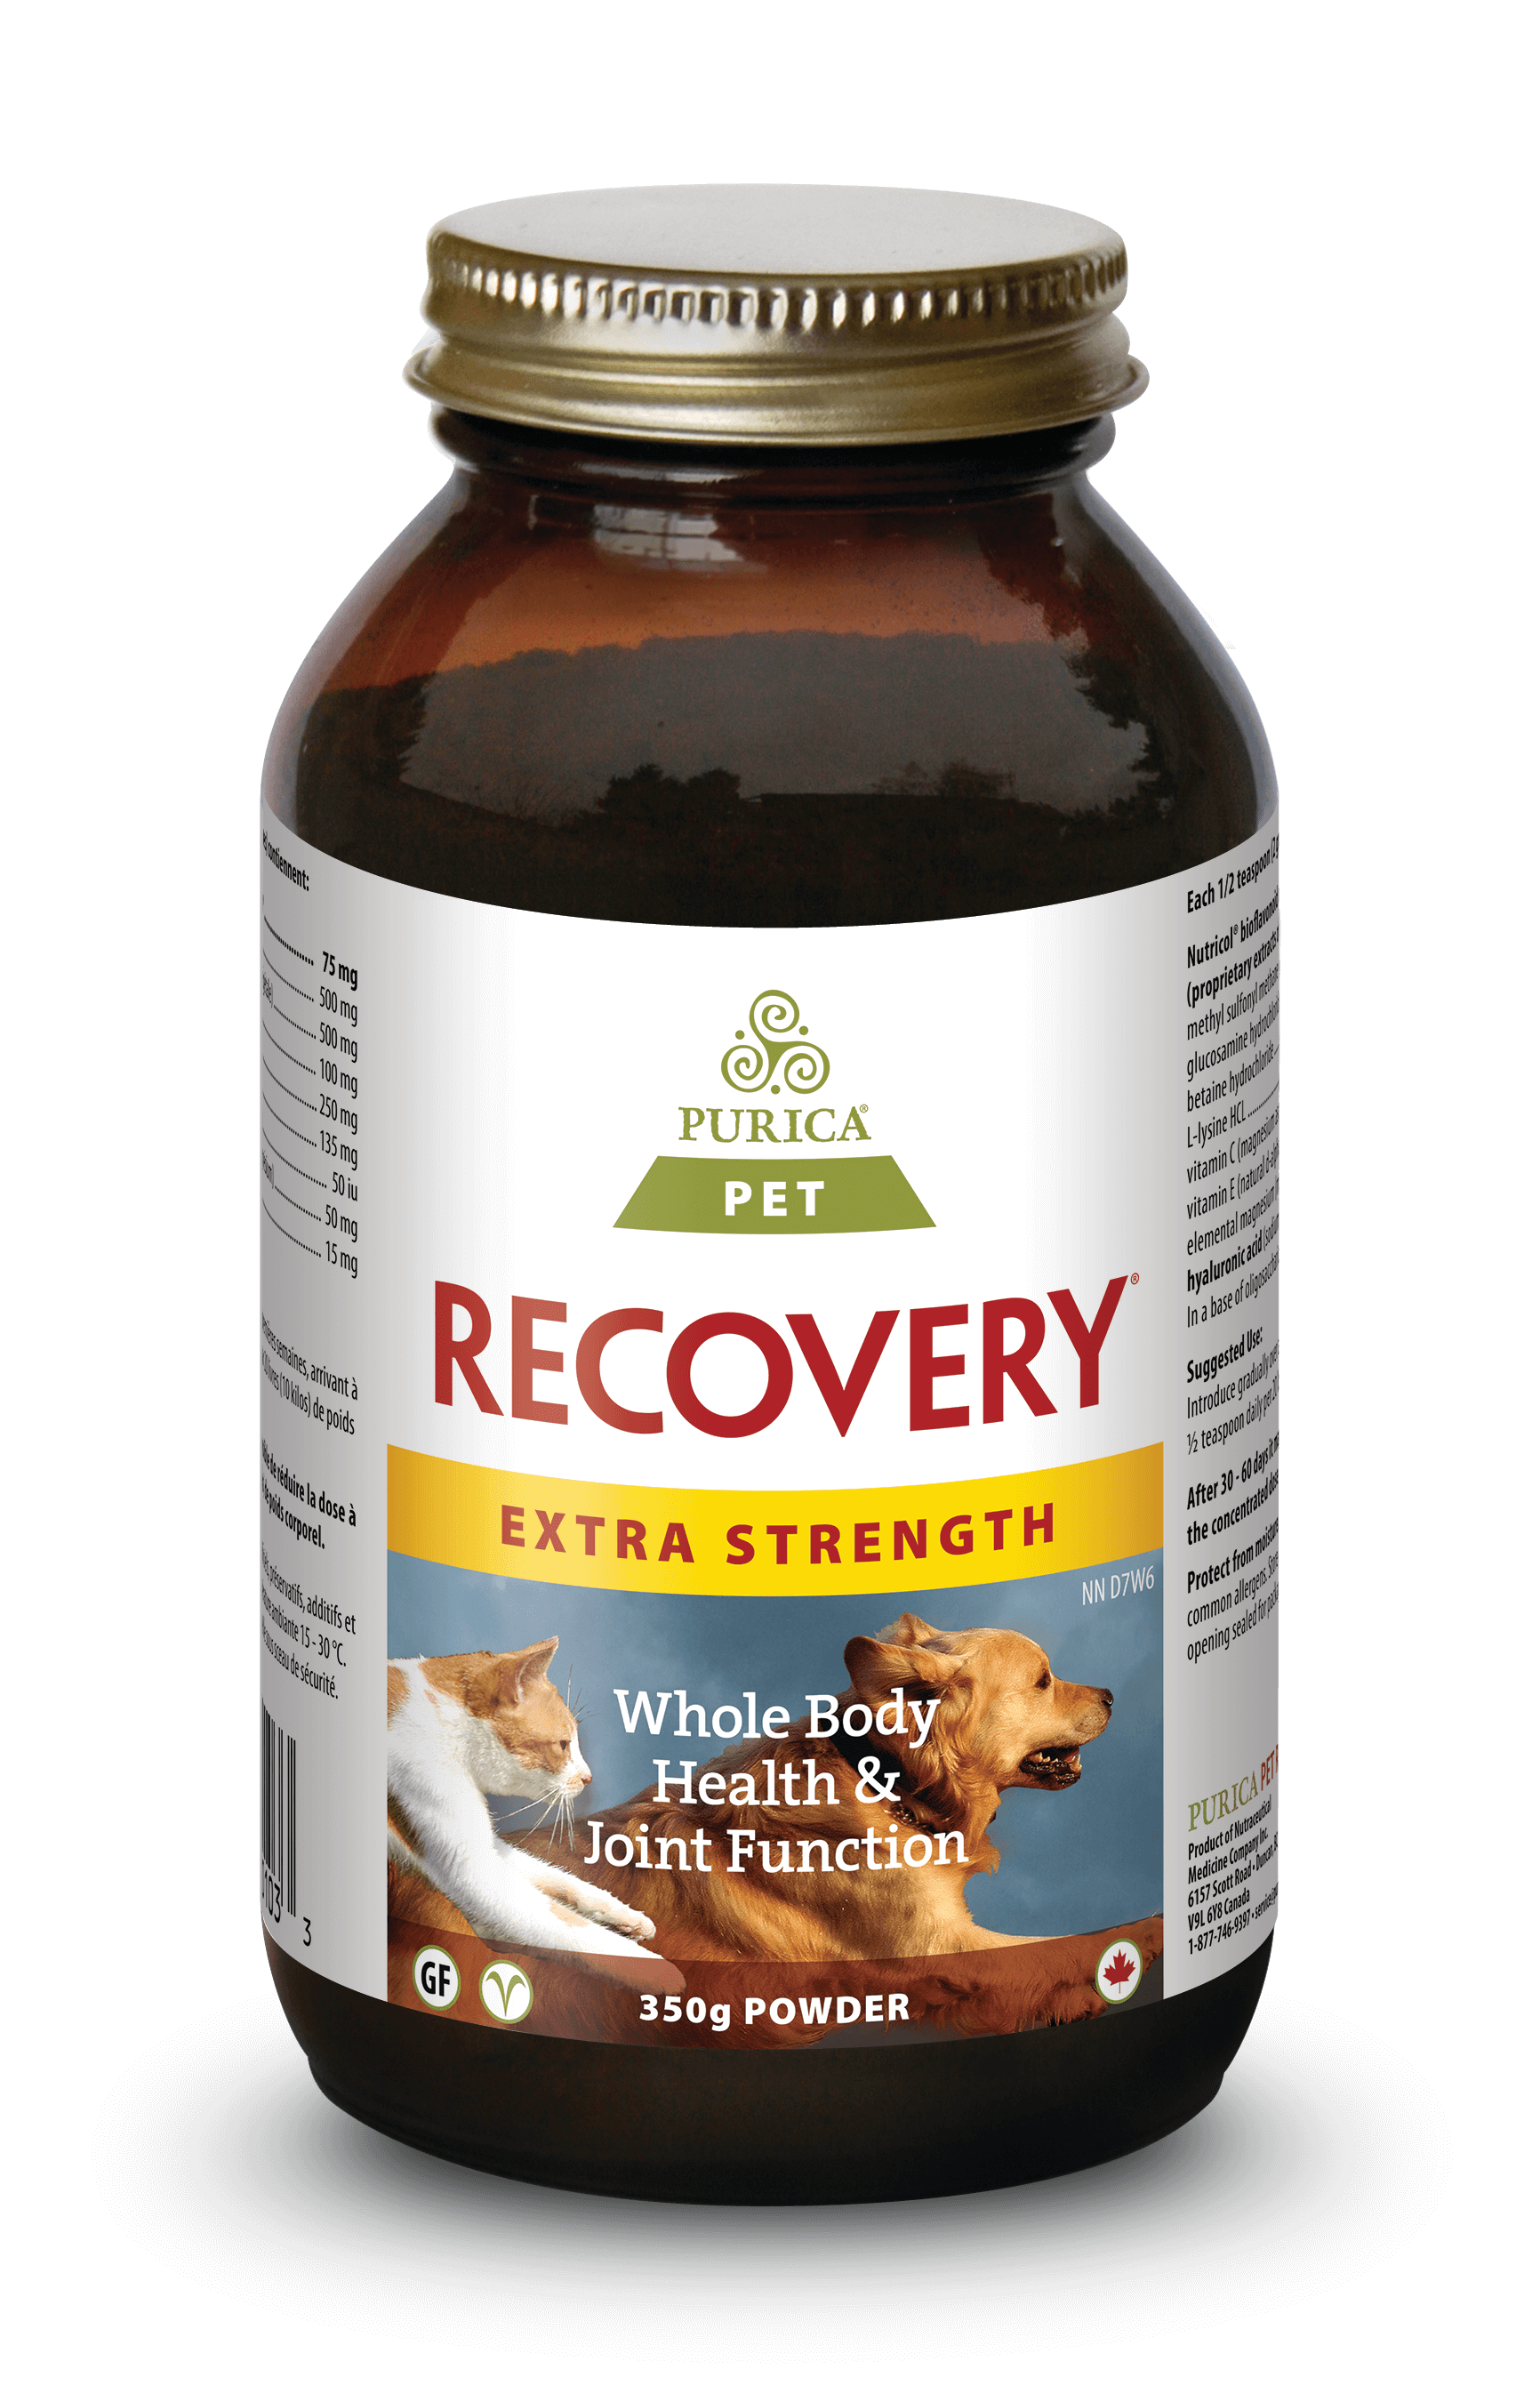 Purica Recovery Extra Strength Powder Dog & Cat Supplement, 350-gram